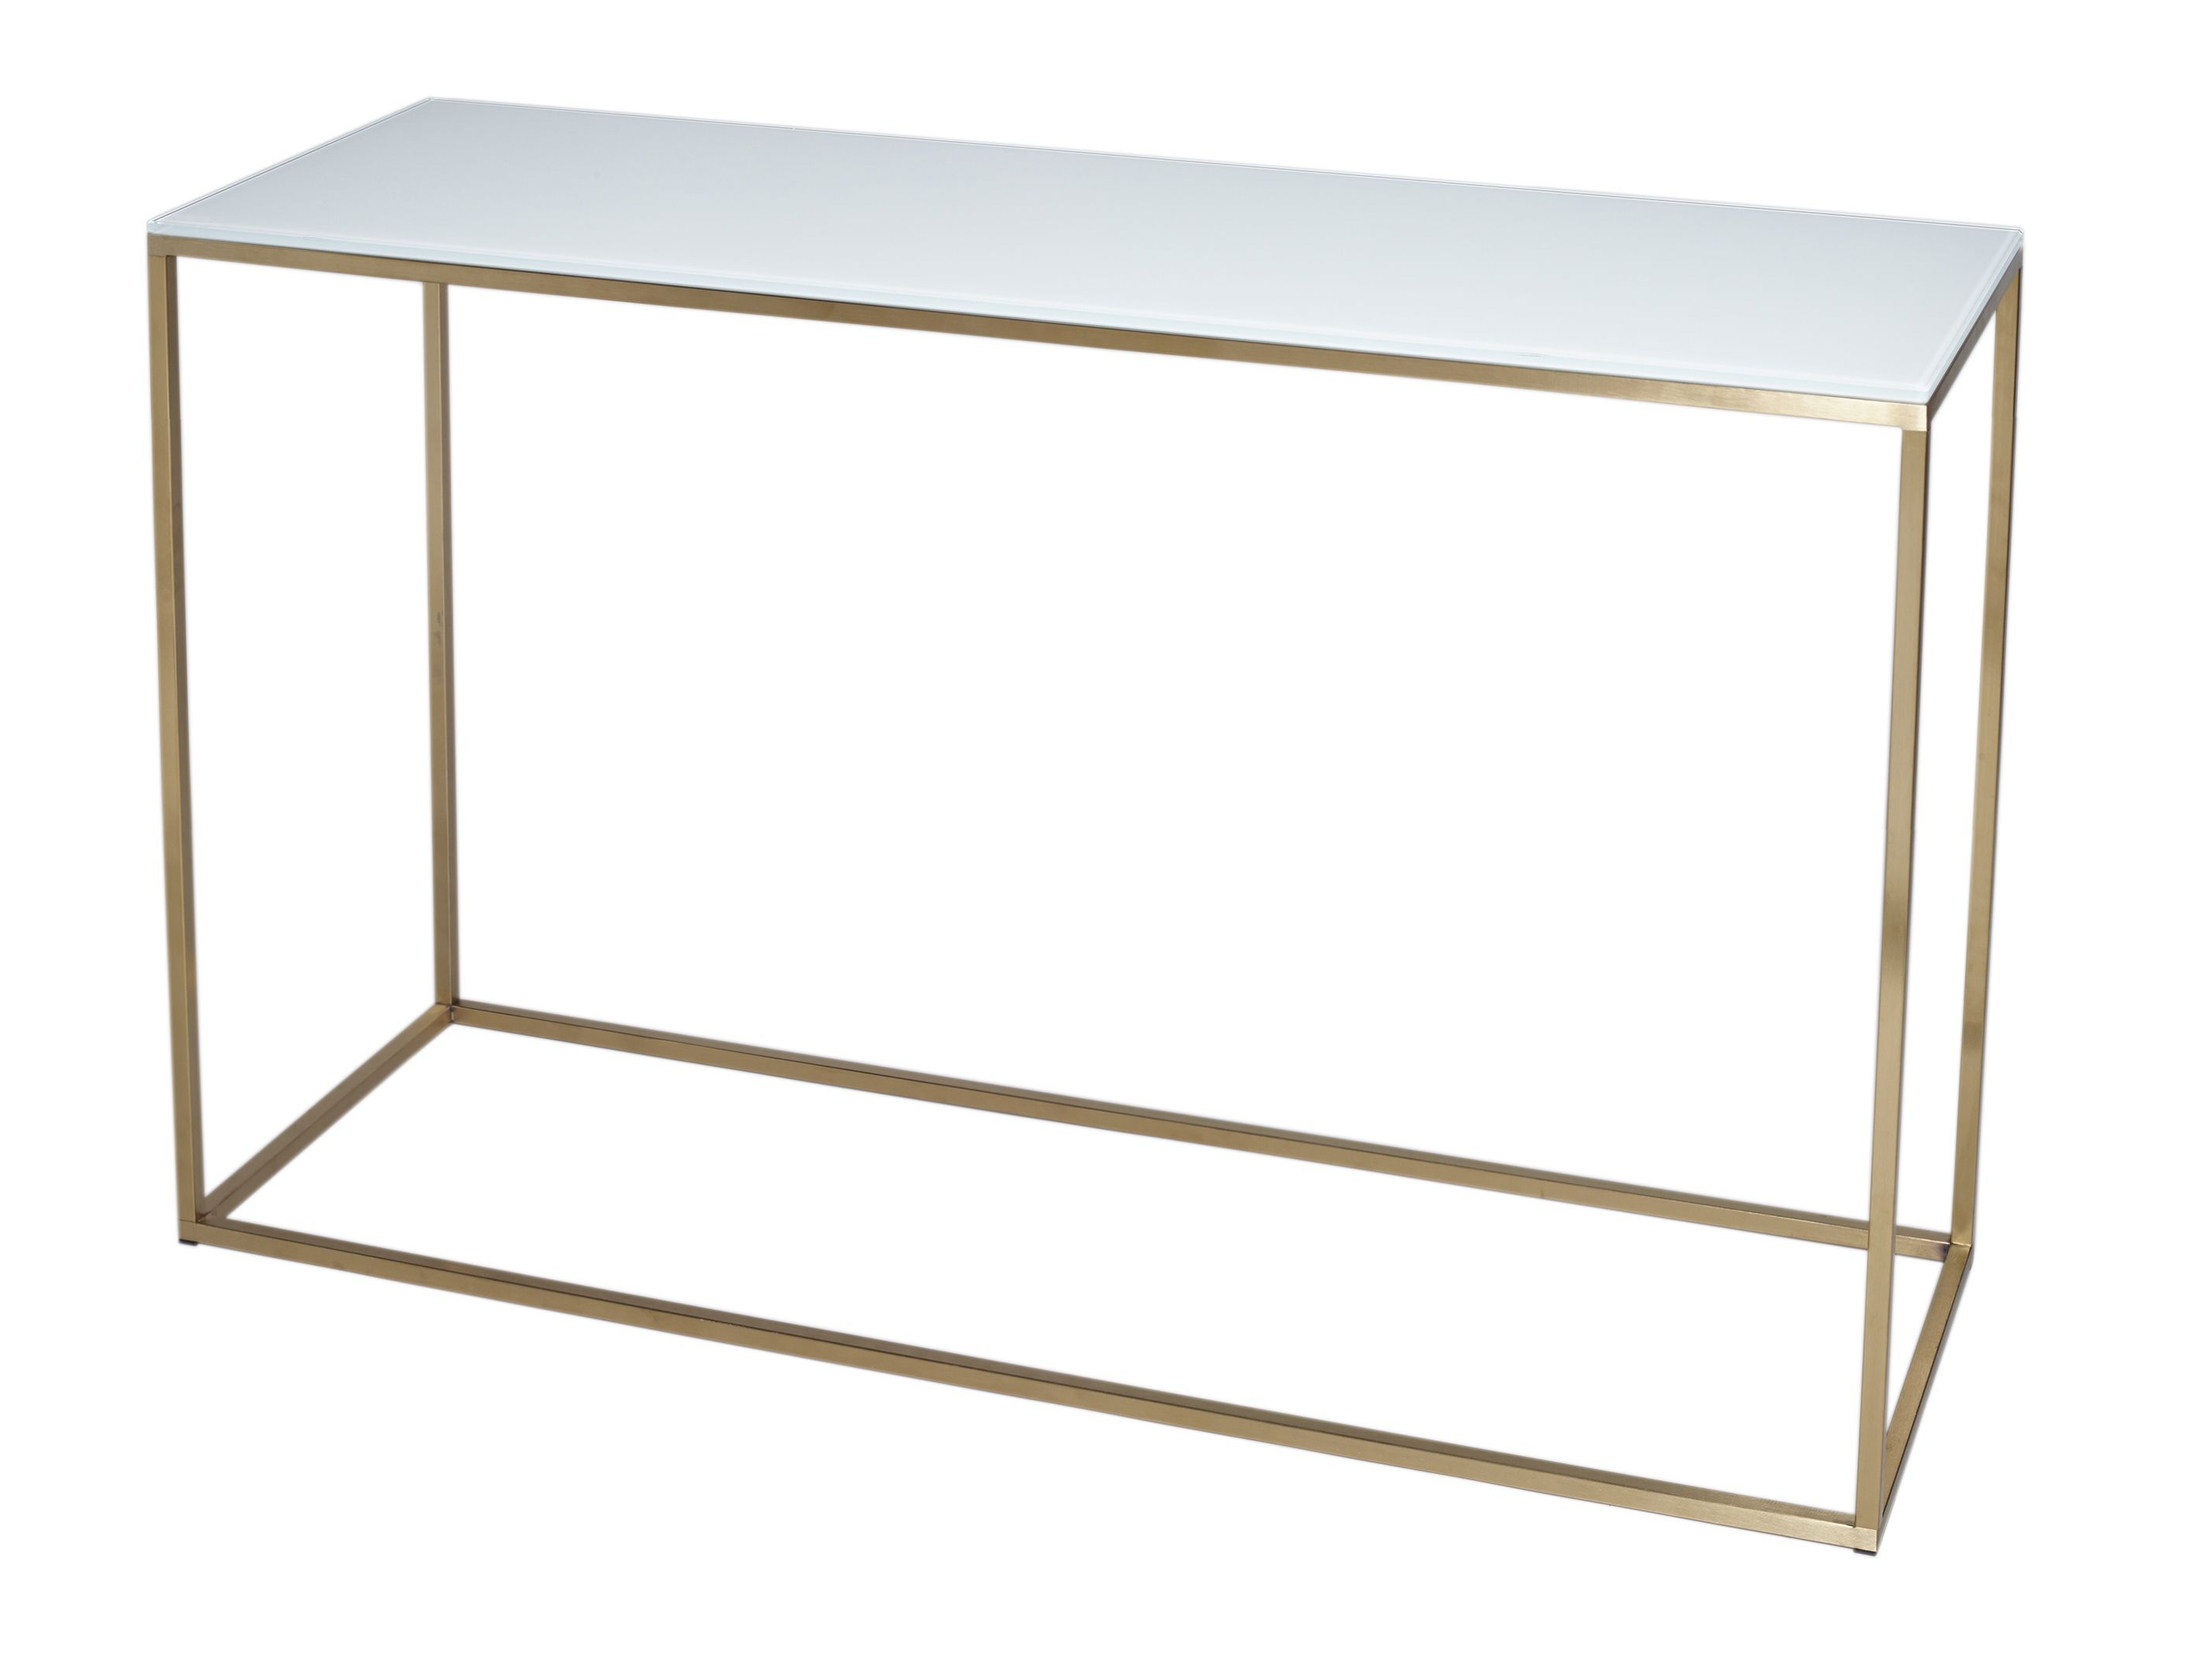 Elke Glass Console Tables With Brass Base Pertaining To 2018 Brass Console Table (Gallery 8 of 20)